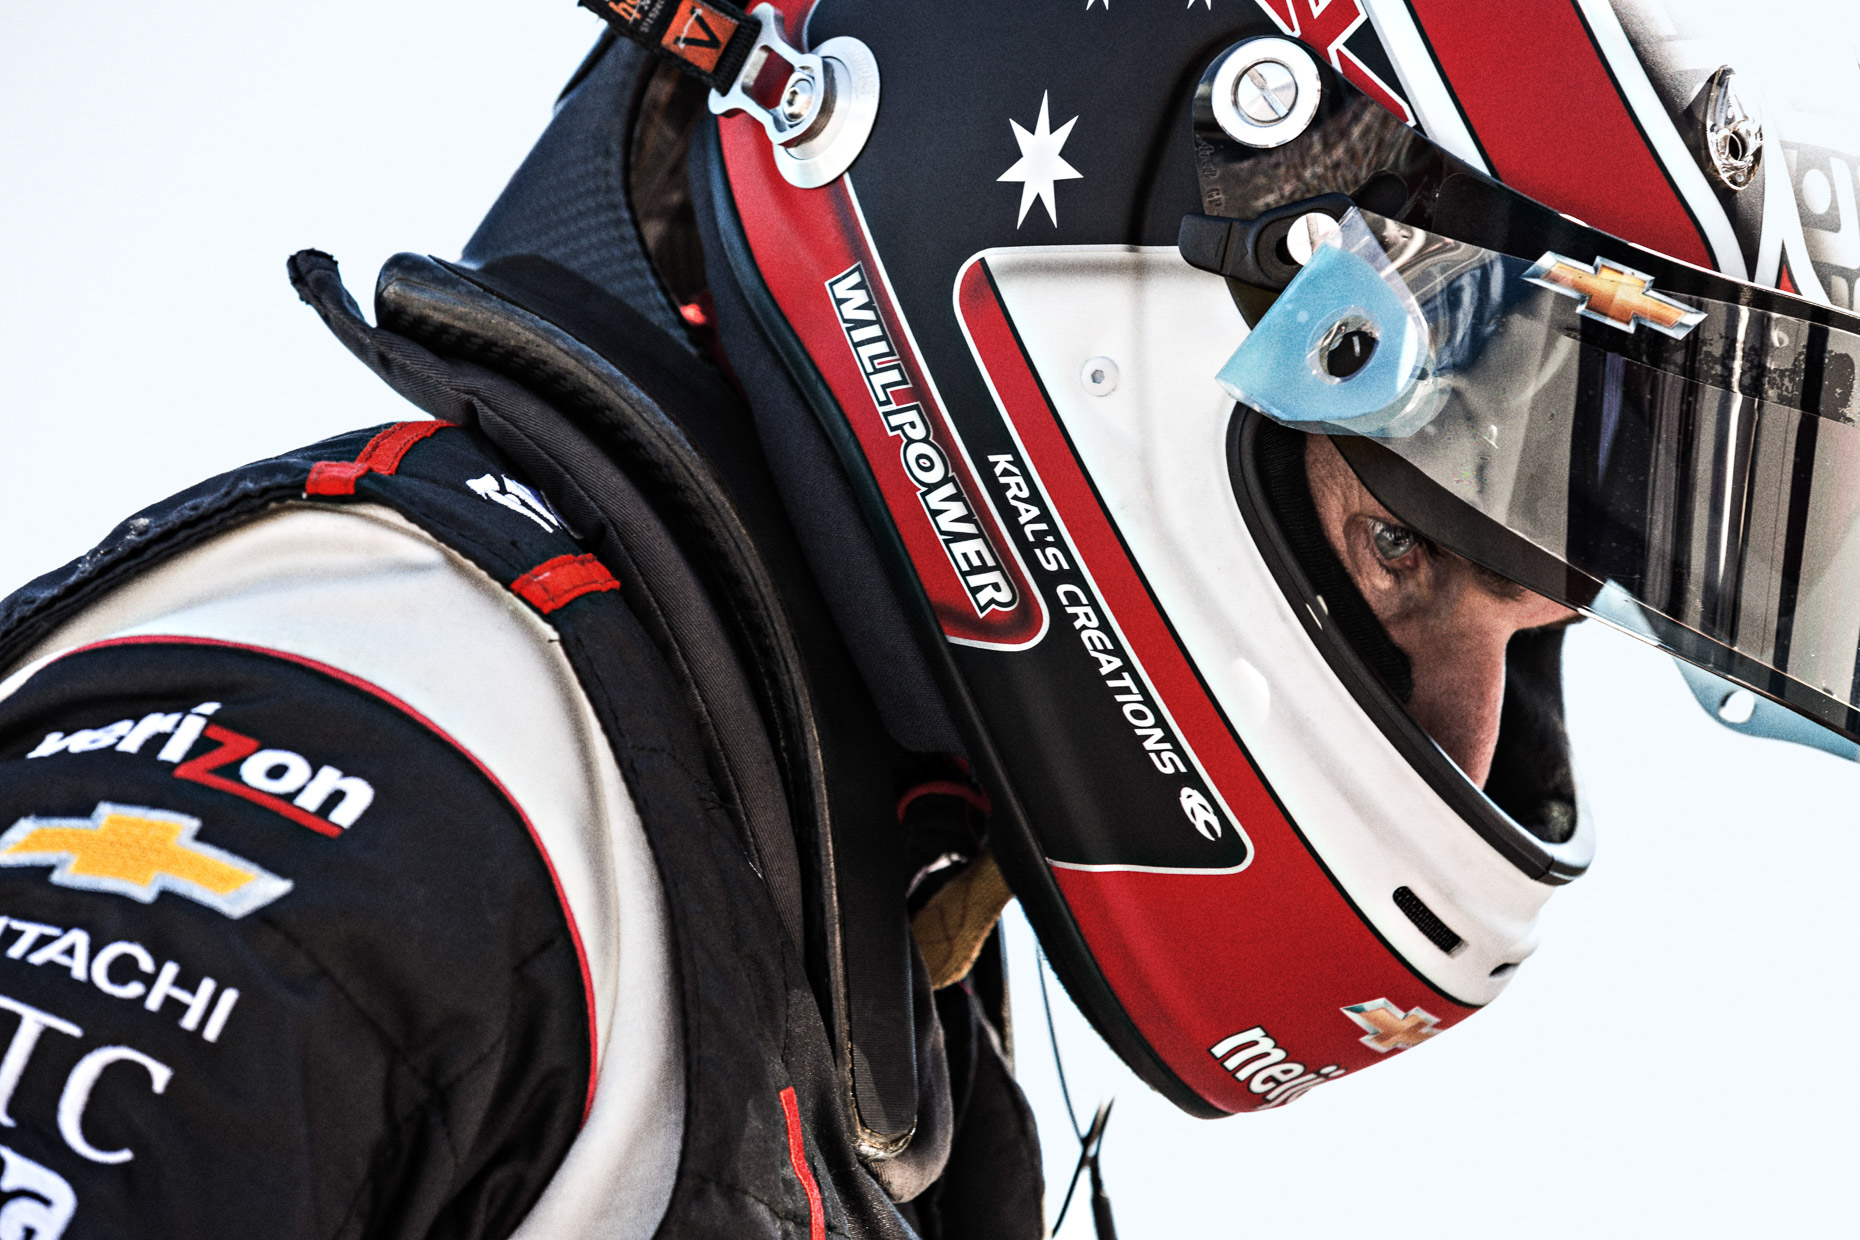 Tight editorial portrait of Racecar driver and athlete Will Power IndyCar Team Penske Charlotte Motor Speedway by Andy Batt